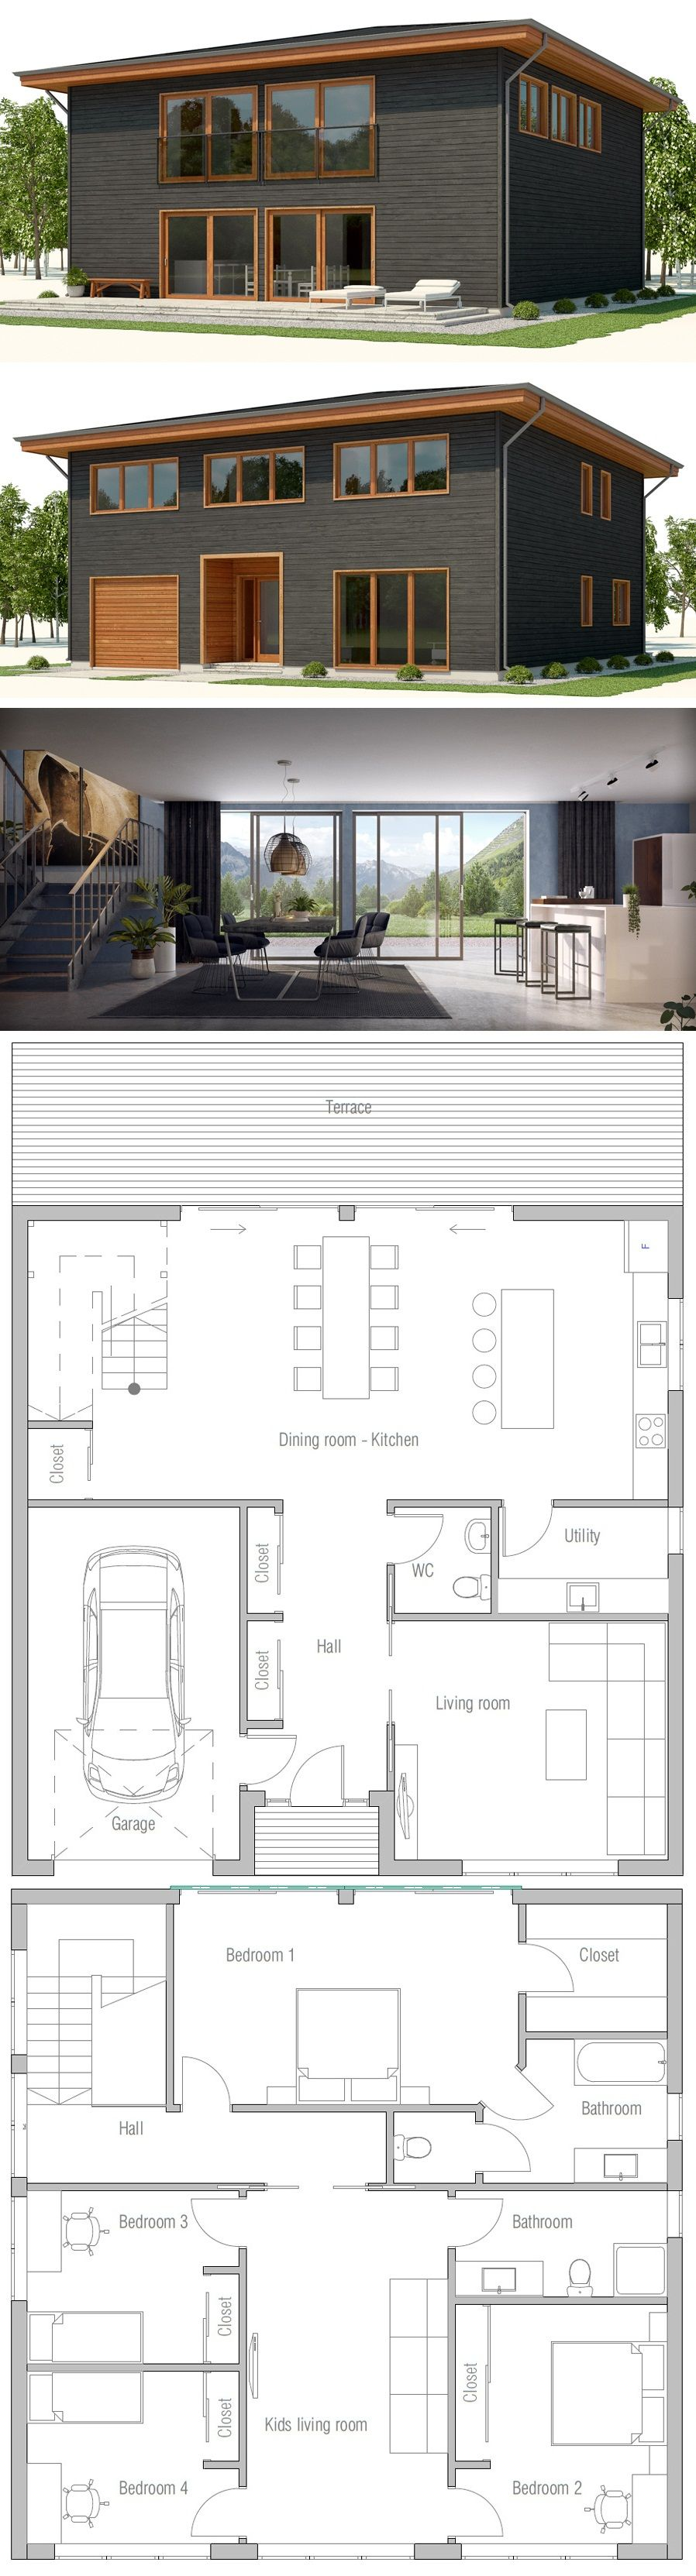 House Plan 2018 | Houses | Pinterest | House, Architecture and House ...